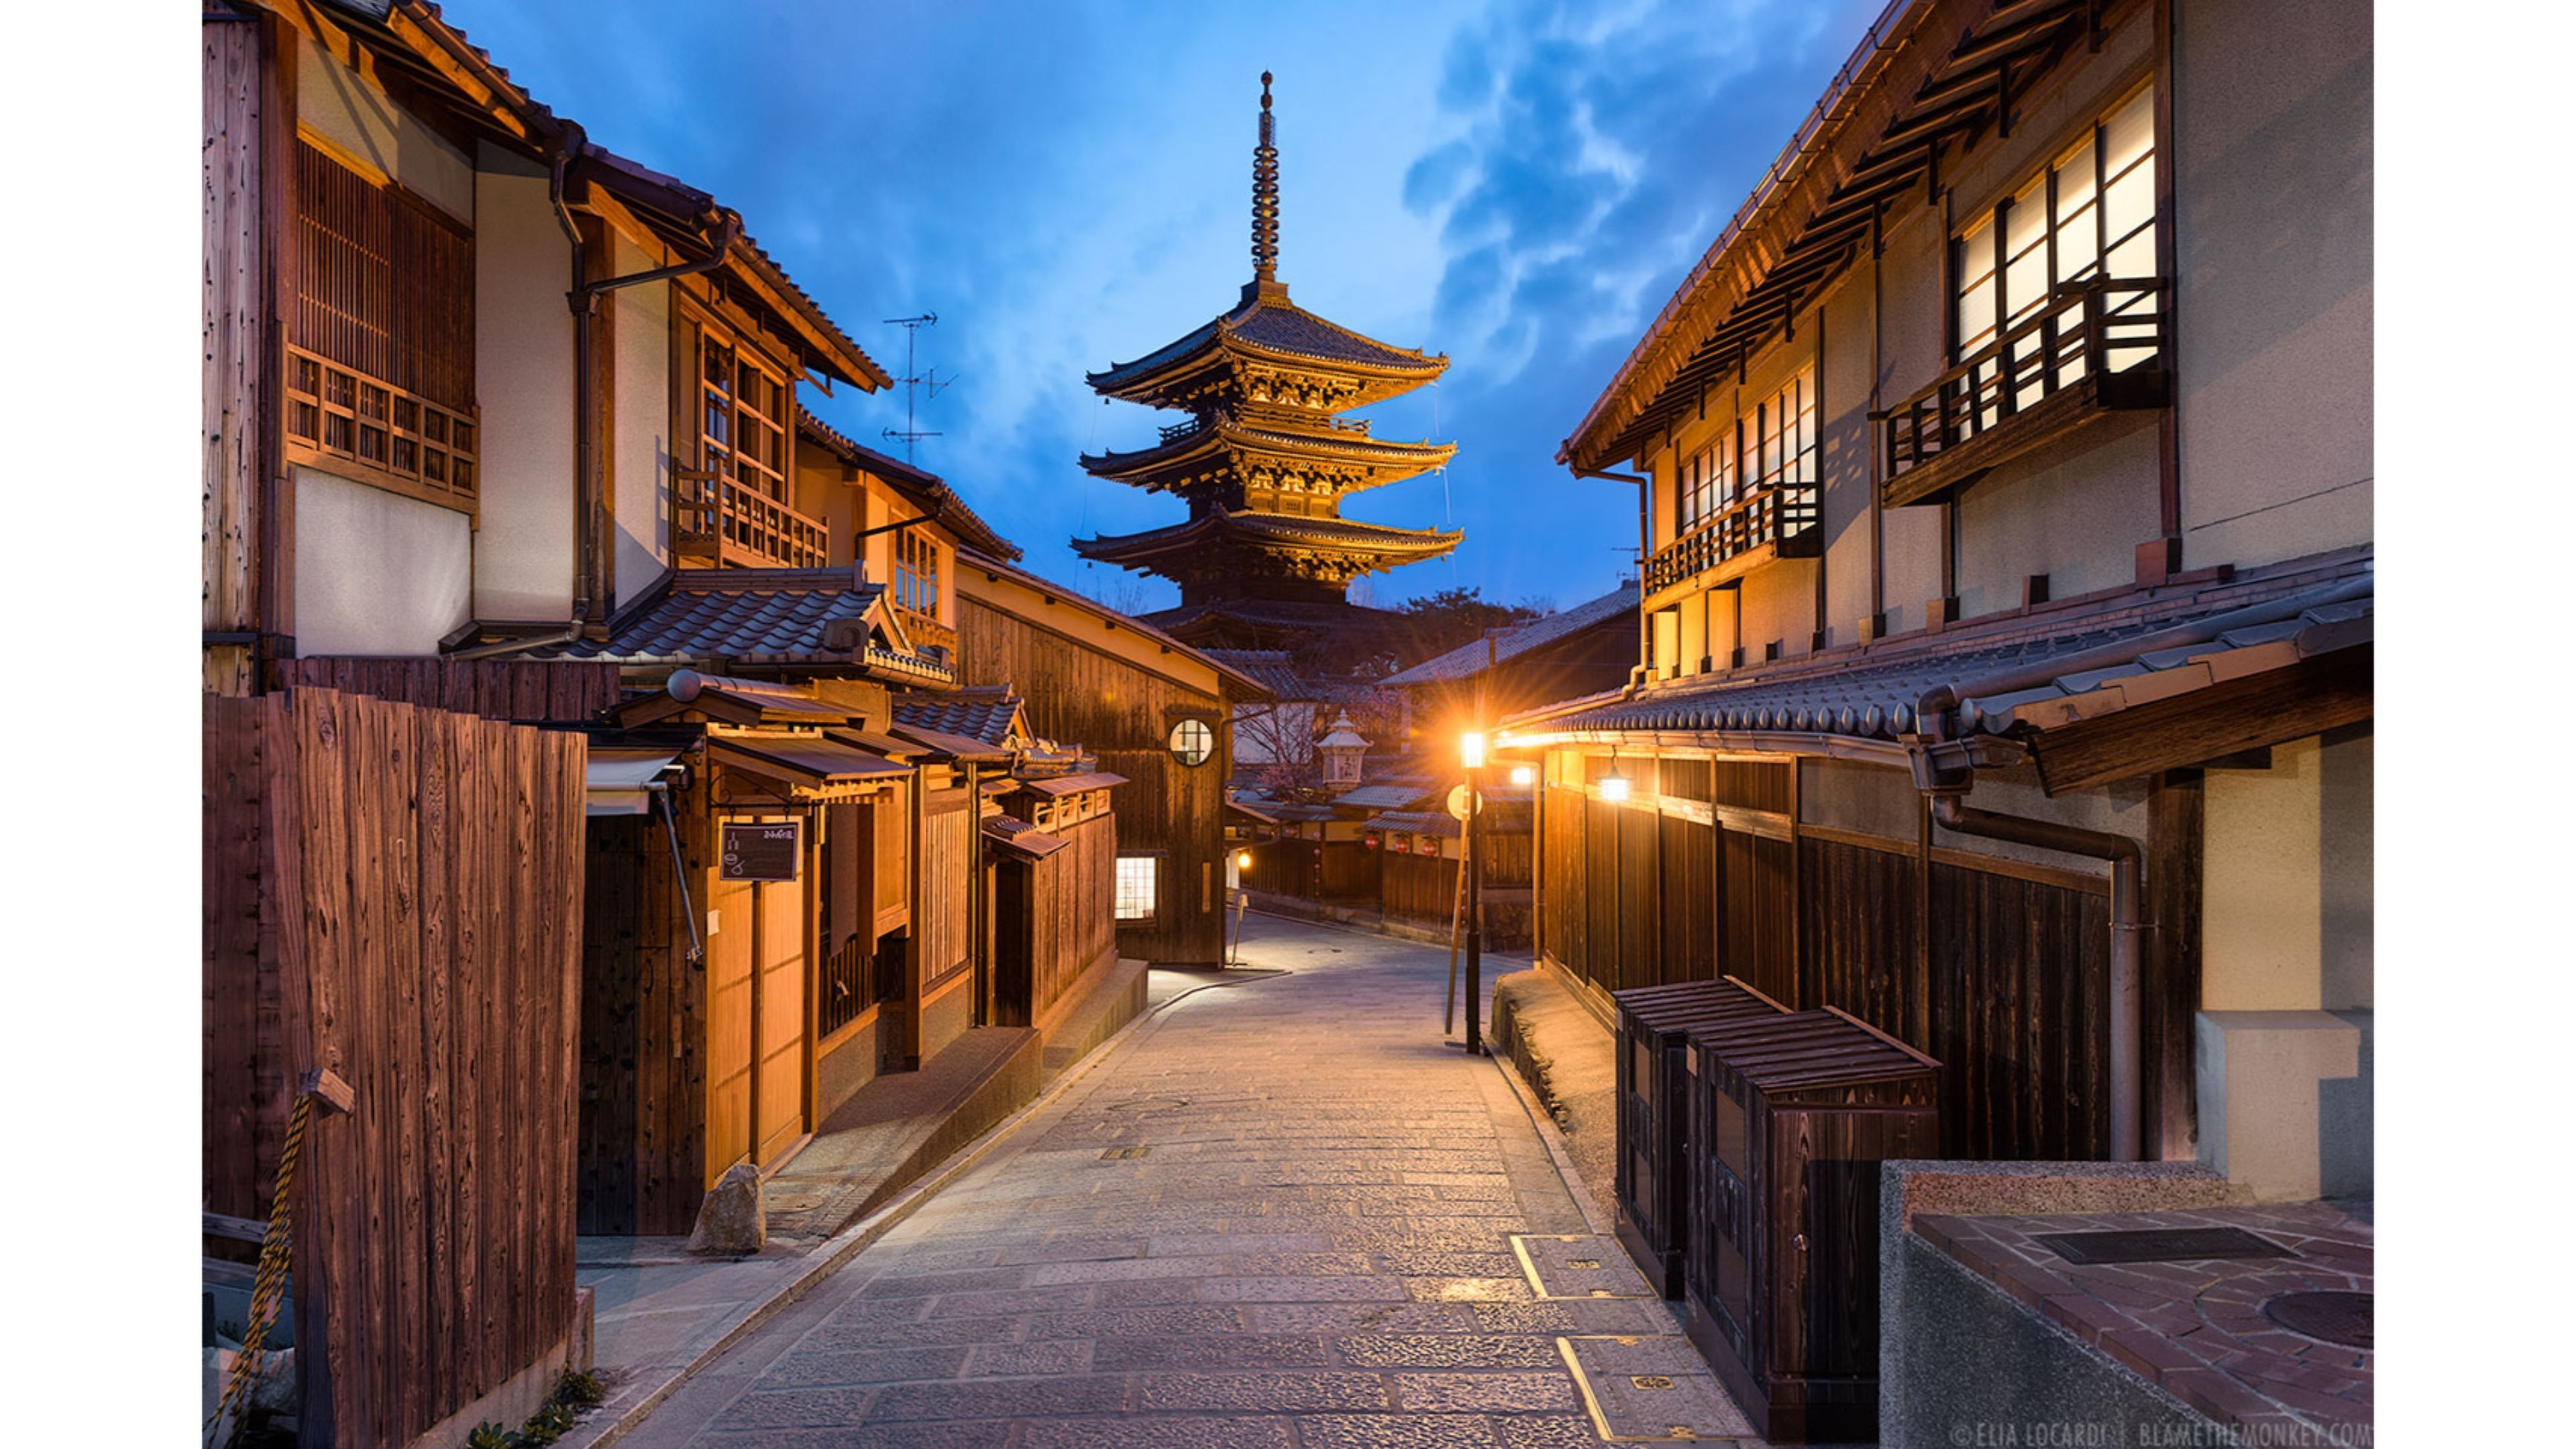 Japanese Alley 4K Wallpapers - Top Free Japanese Alley 4K ...